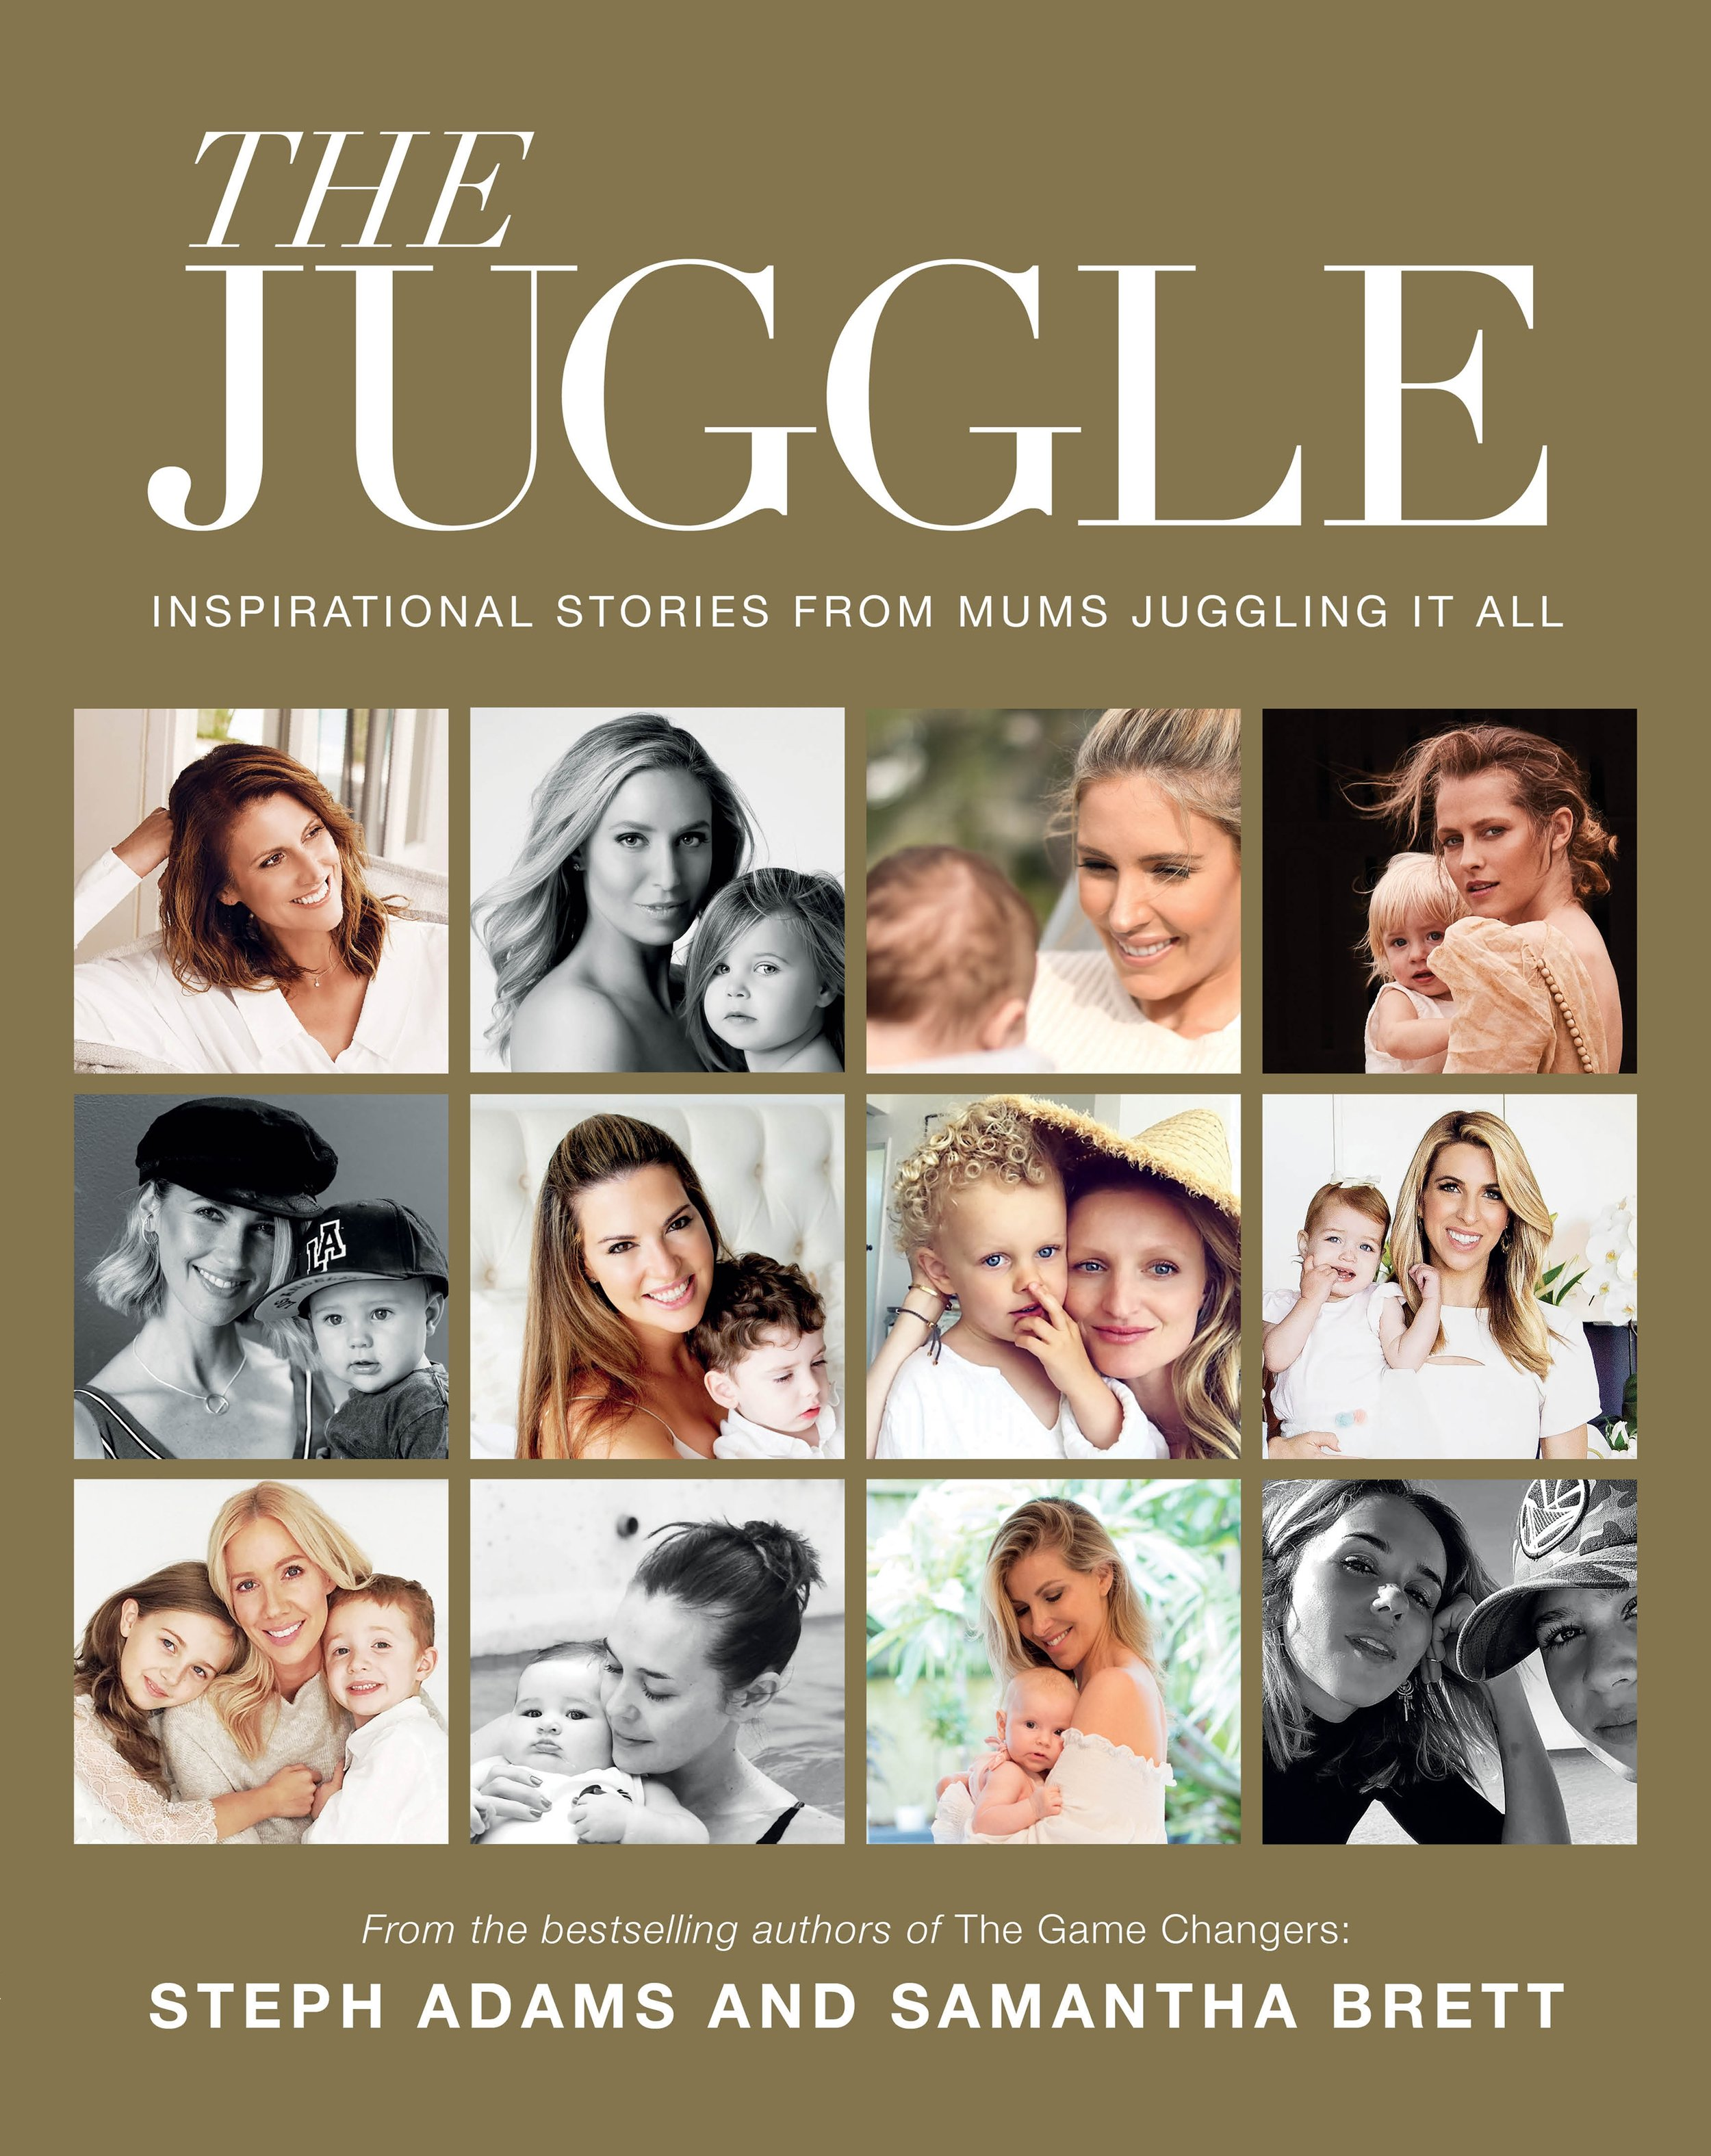 THE JUGGLE - OUT APRIL 2019